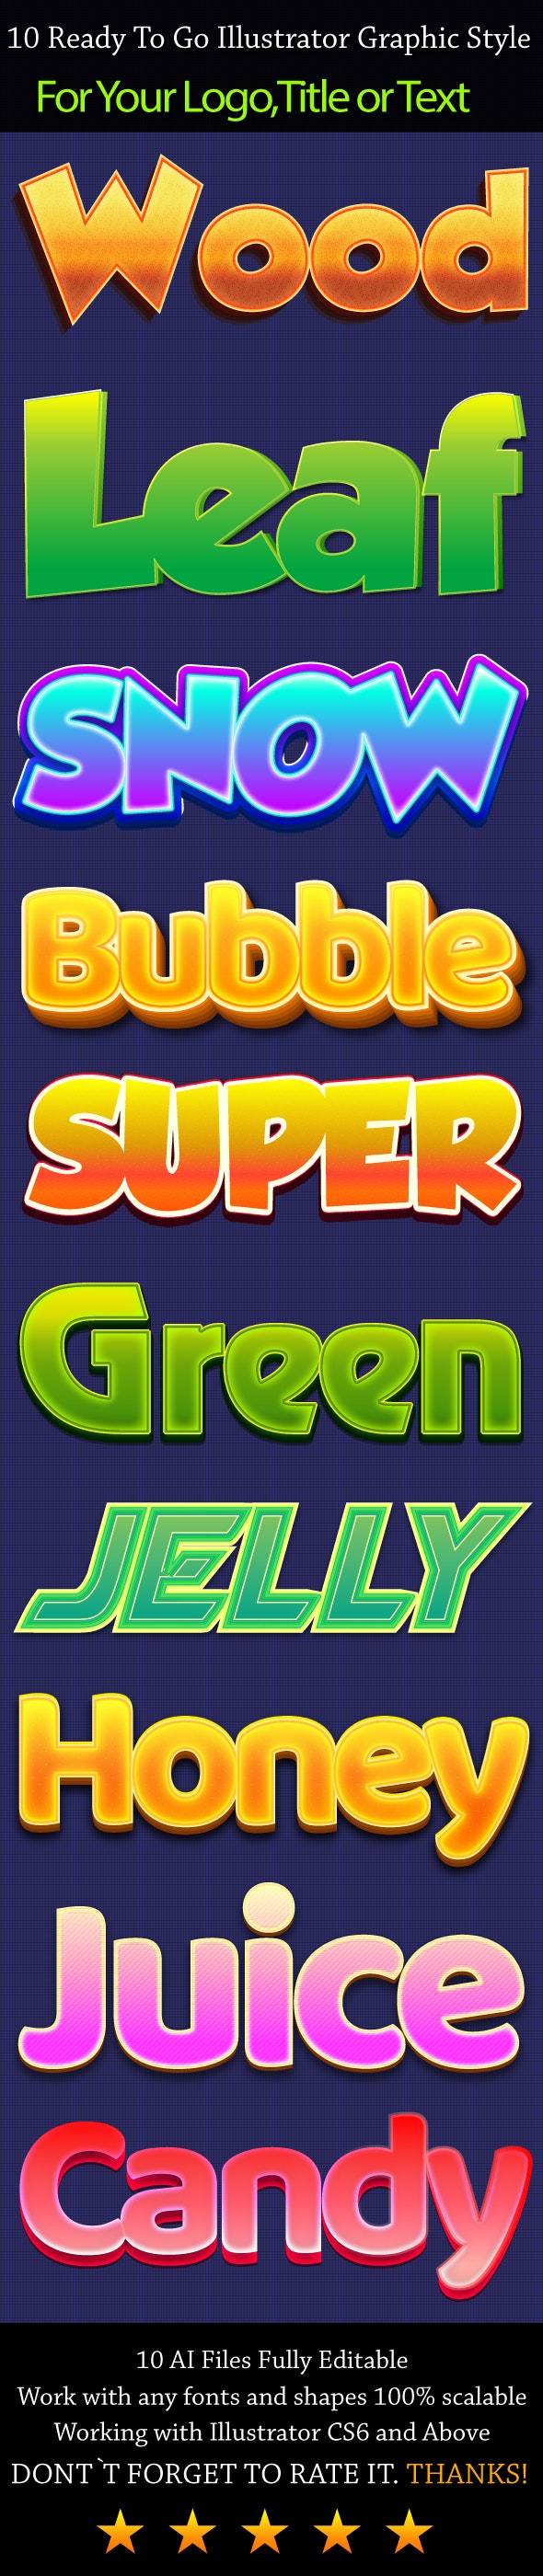 10 Glossy Illustrator Graphic Styles - Text Effects Styles